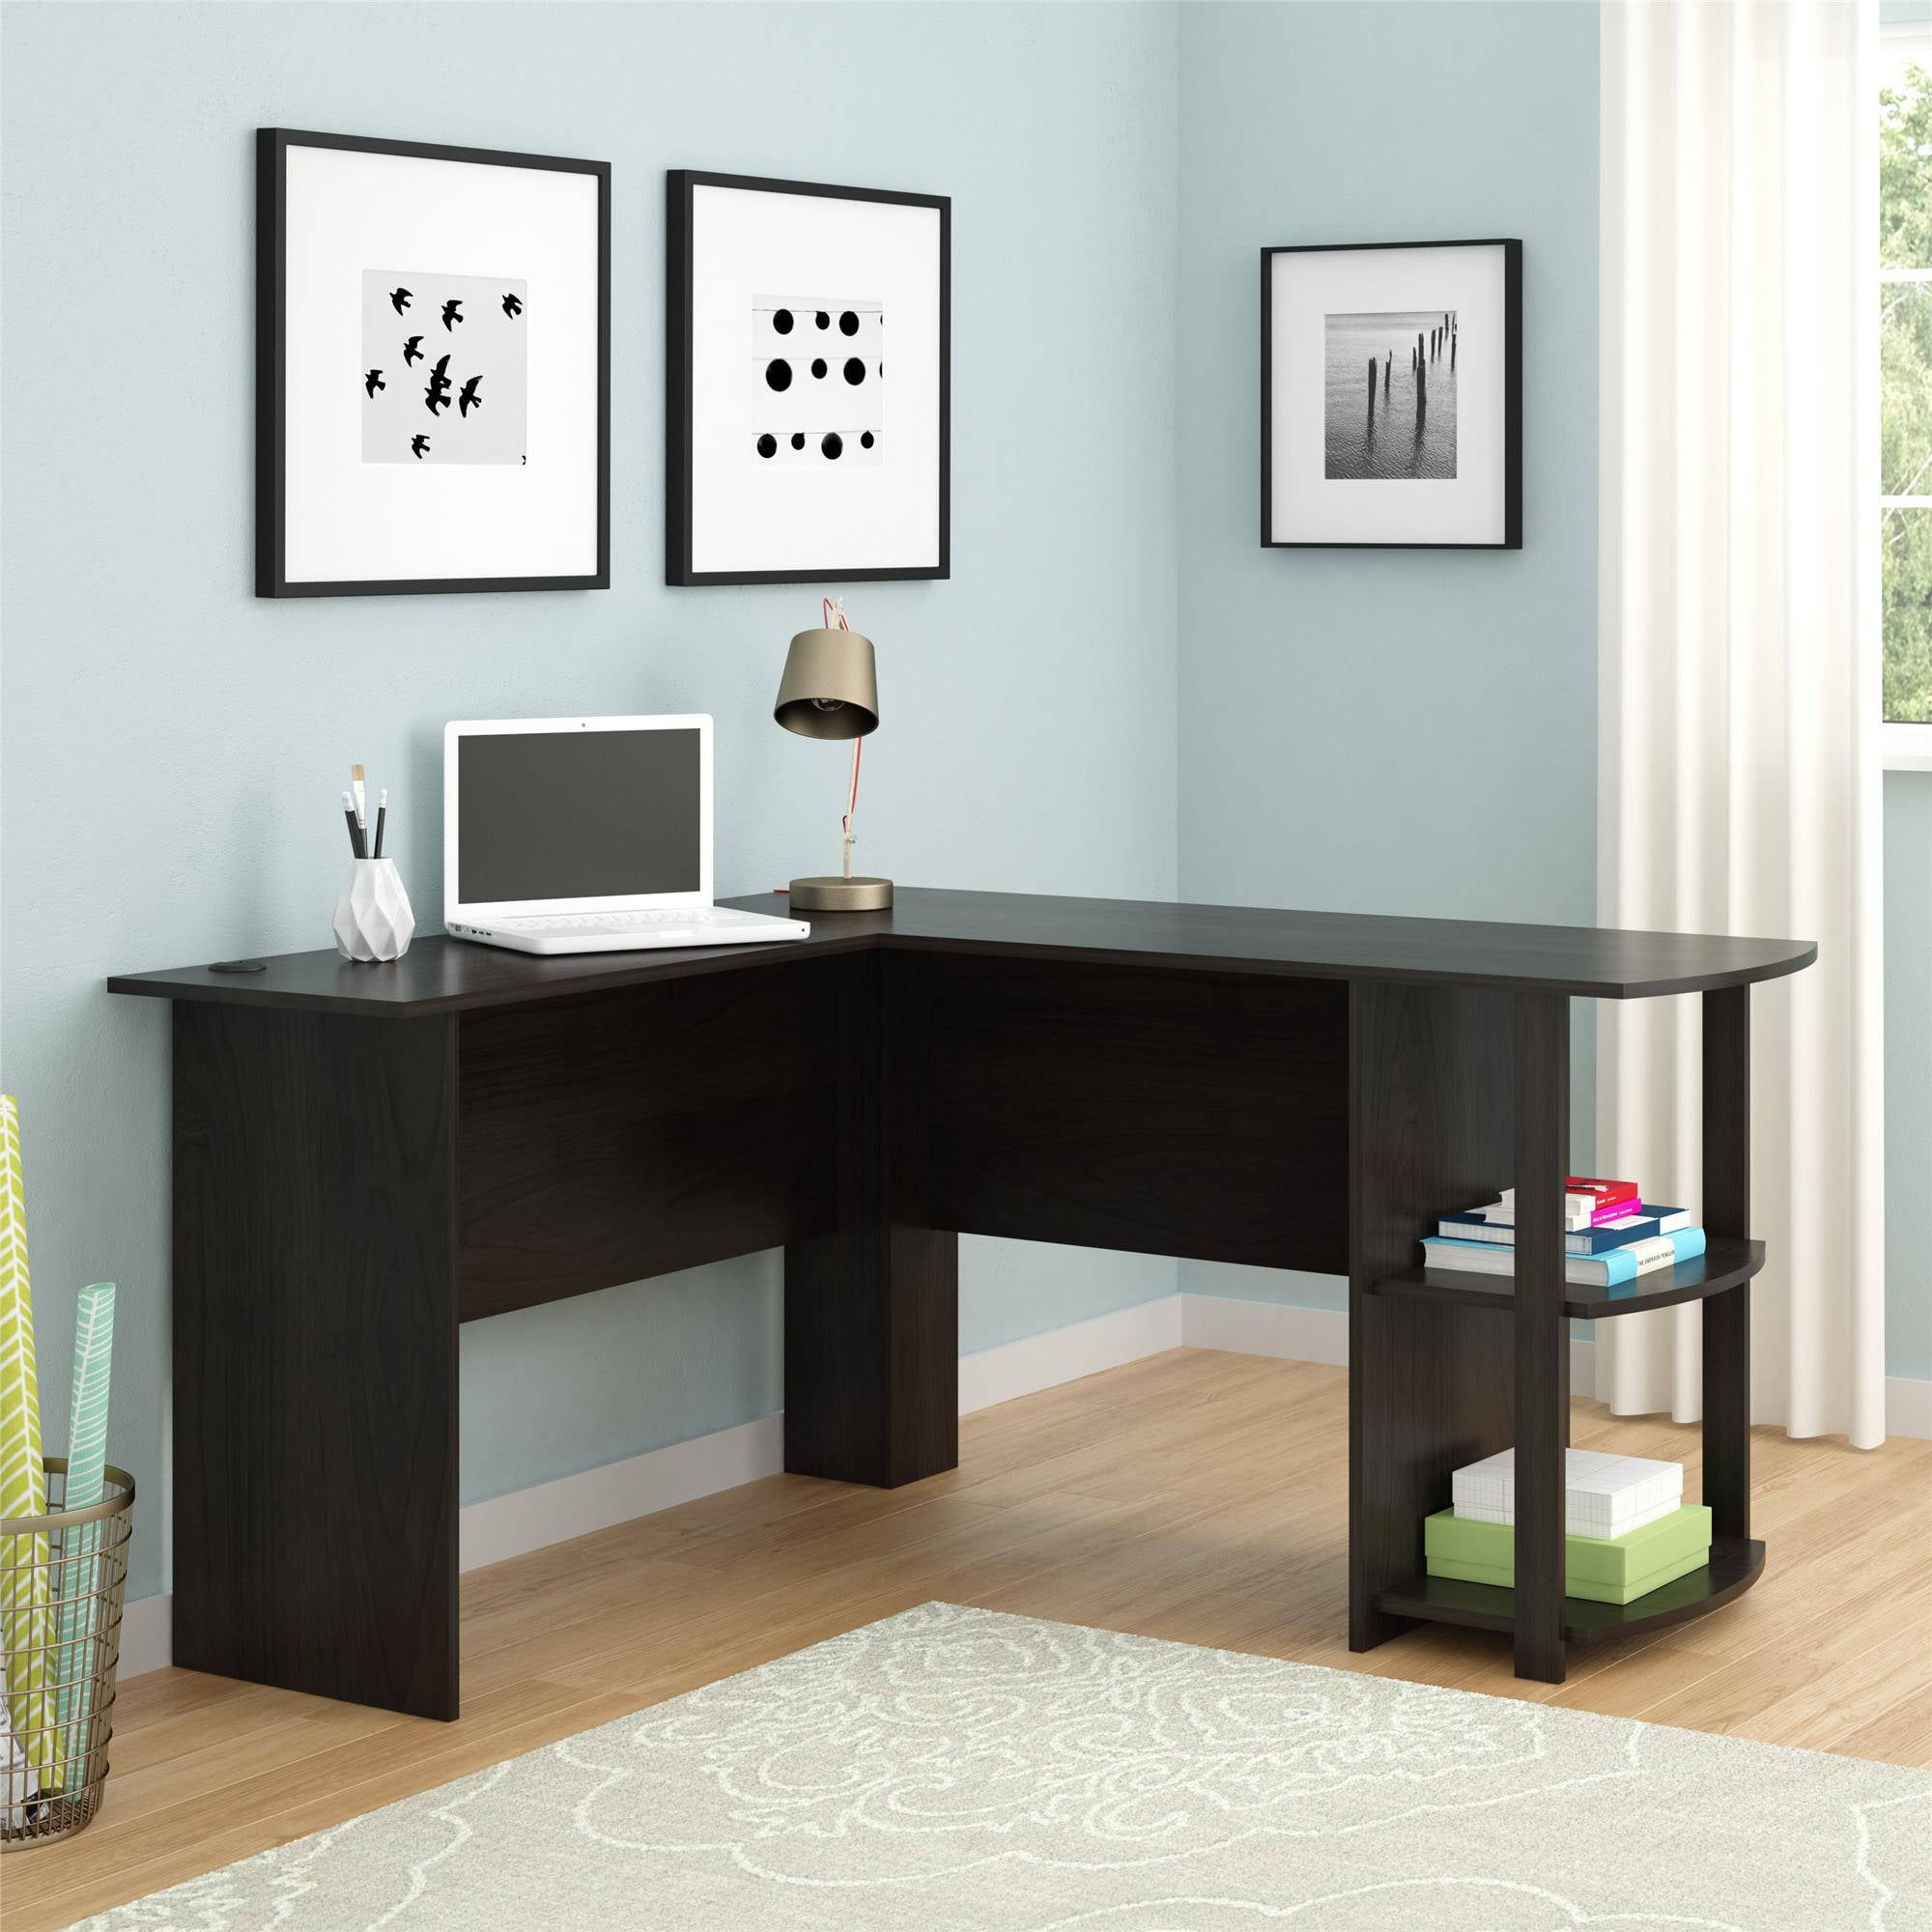 Desks For Teenage Rooms Prepossessing Teens' Room  Every Day Low Prices  Walmart Decorating Design